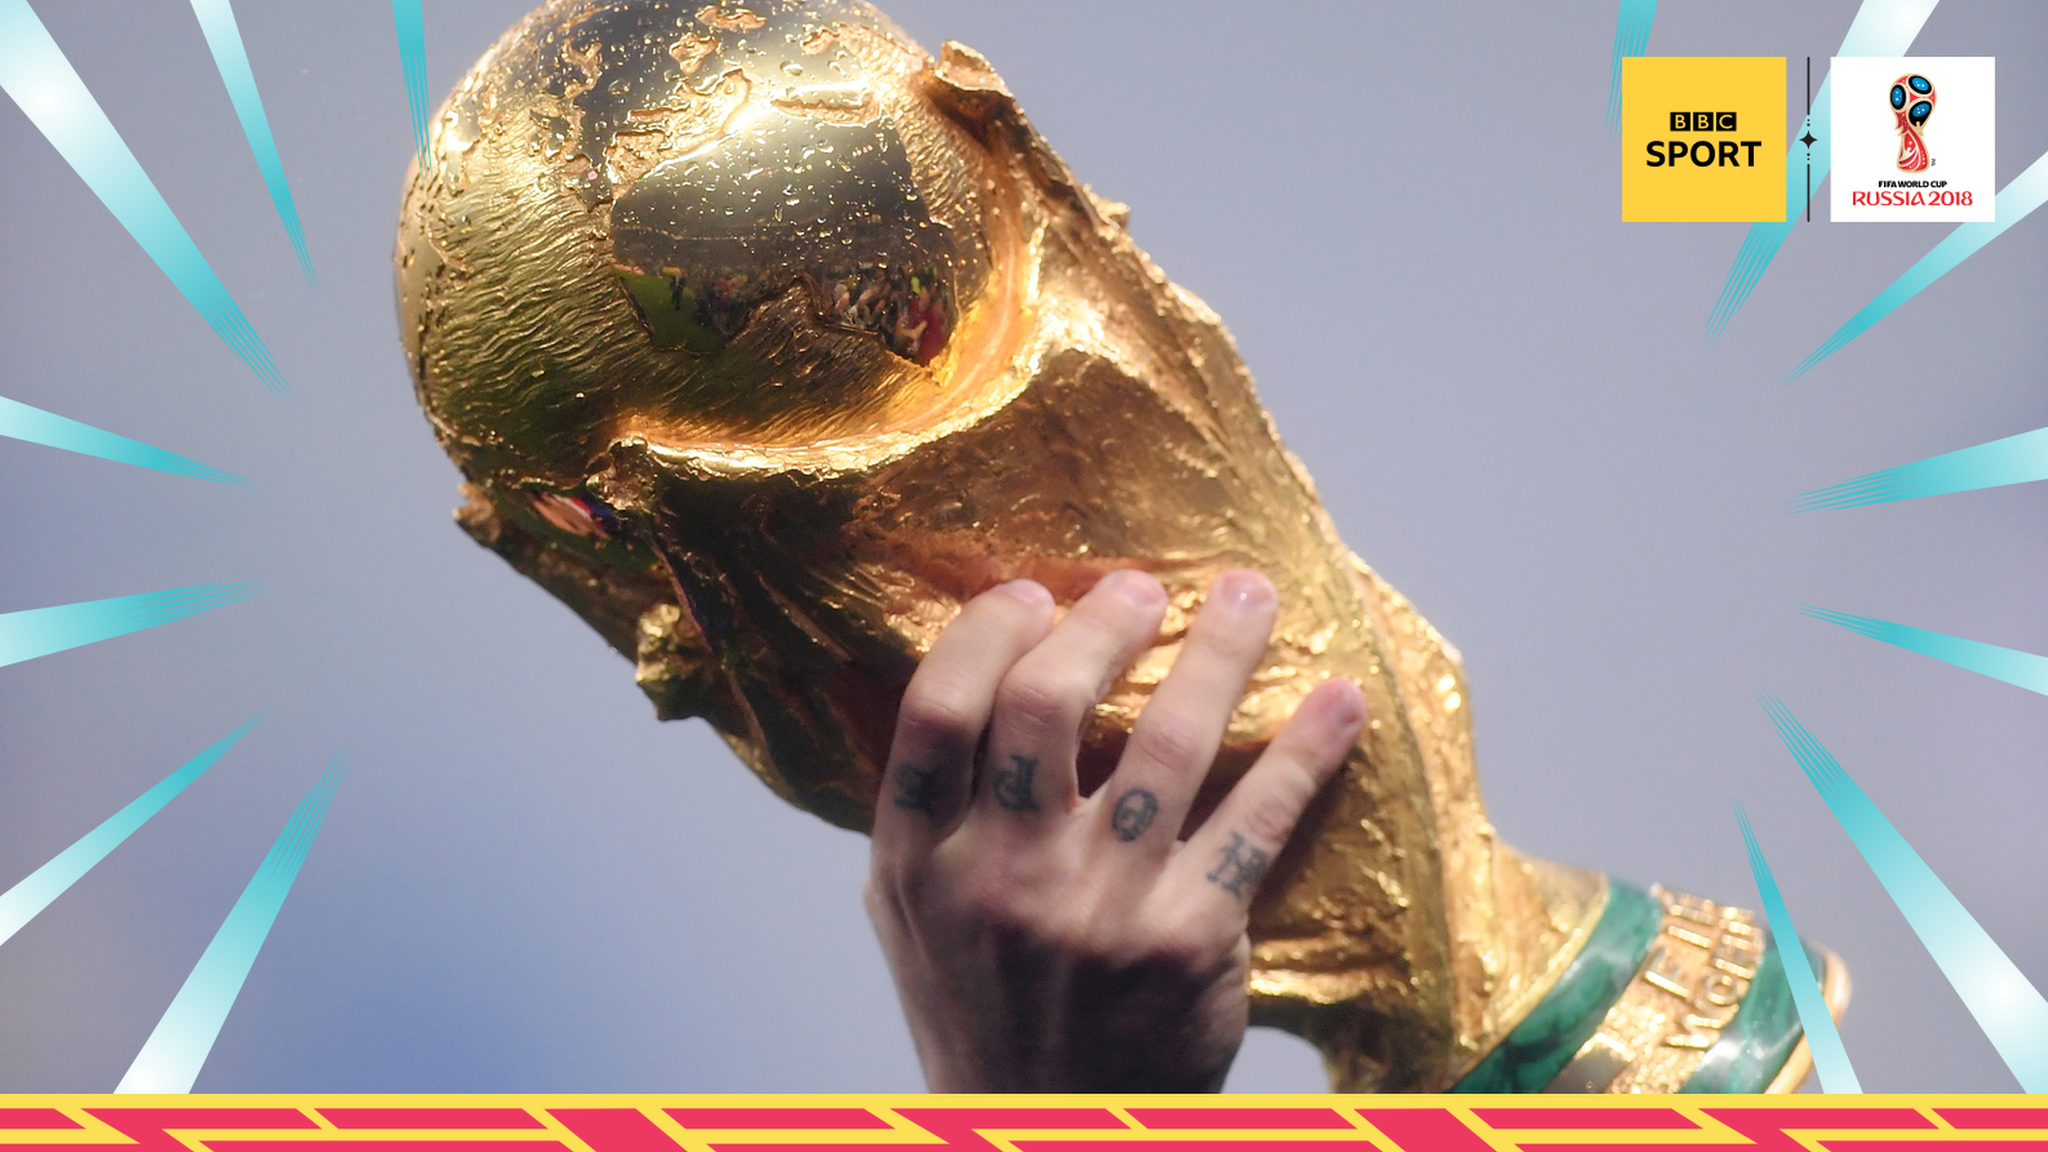 World Cup 2018: Record-breaking online & viewing figures for BBC